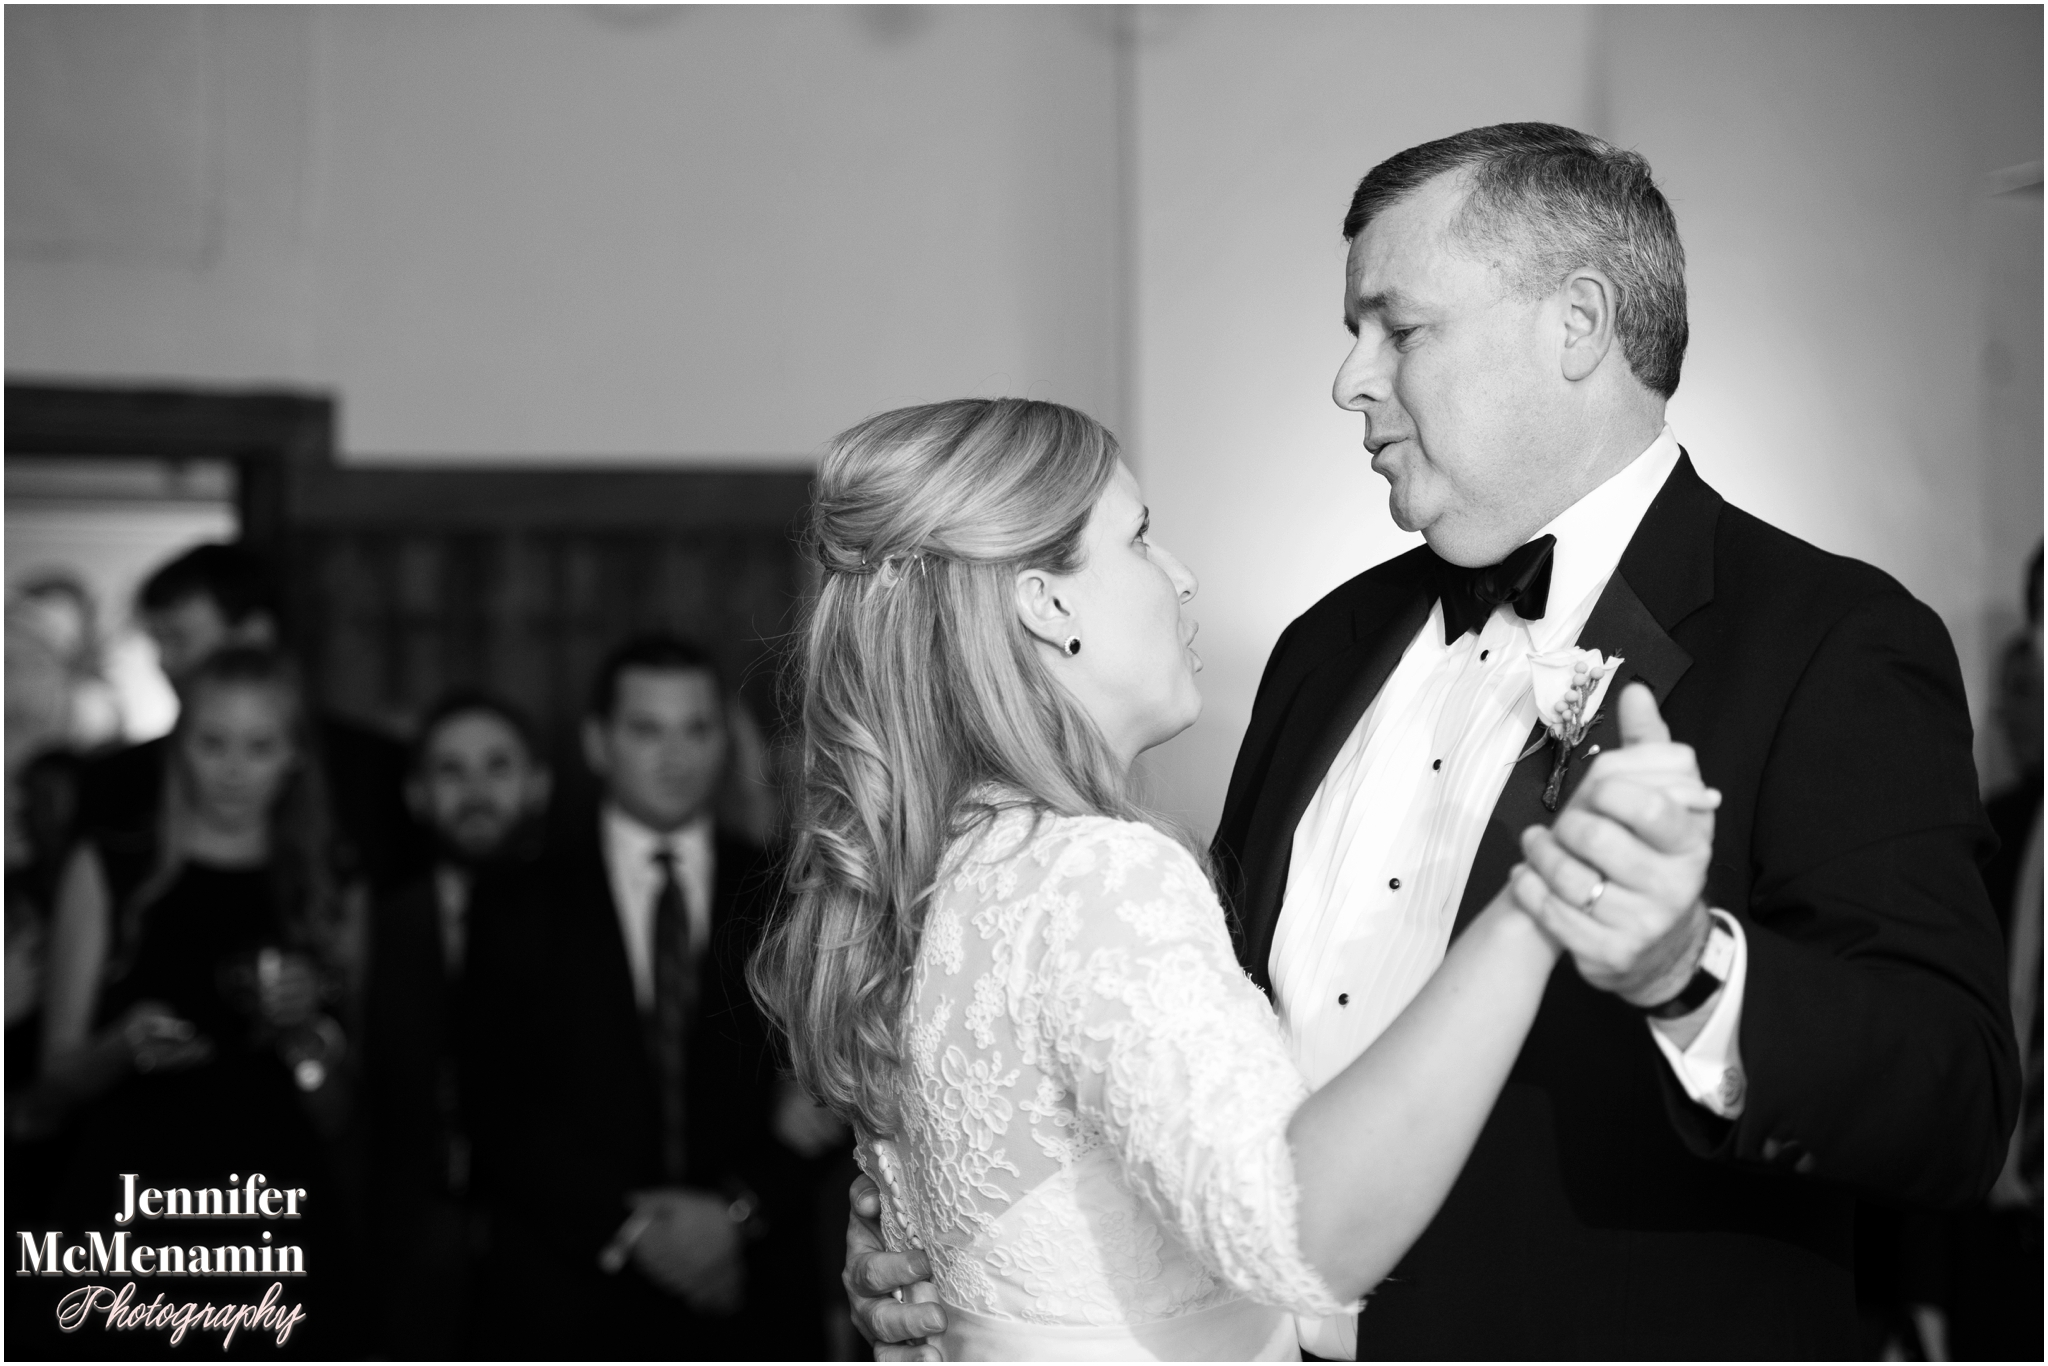 0101_RyanClemmens_02809-0746_JenniferMcMenaminPhotography_Immaculate-Conception-Church_The-Cloisters_Baltimore-wedding-photography_Baltimore-wedding-photographer